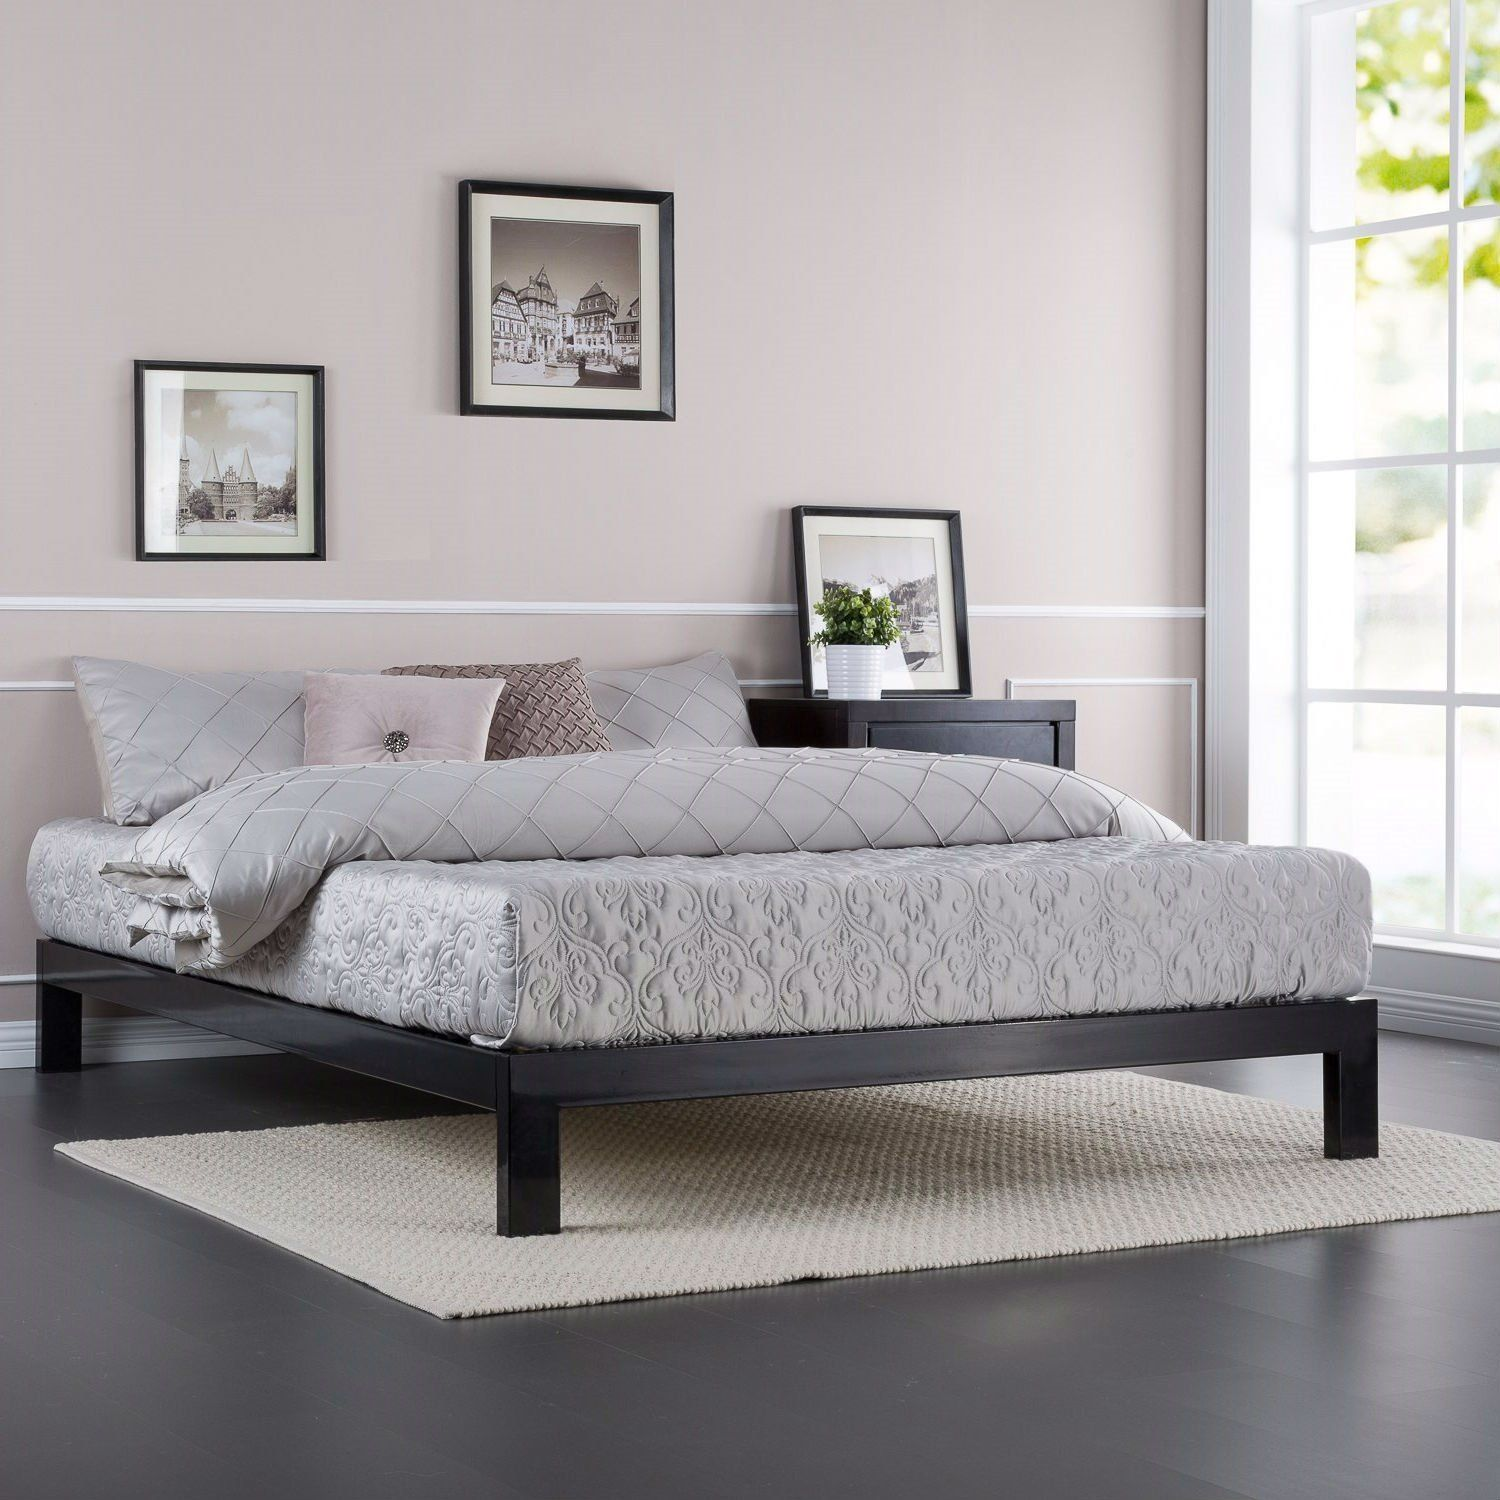 Best This Full Size Contemporary Black Metal Platform Bed With 400 x 300